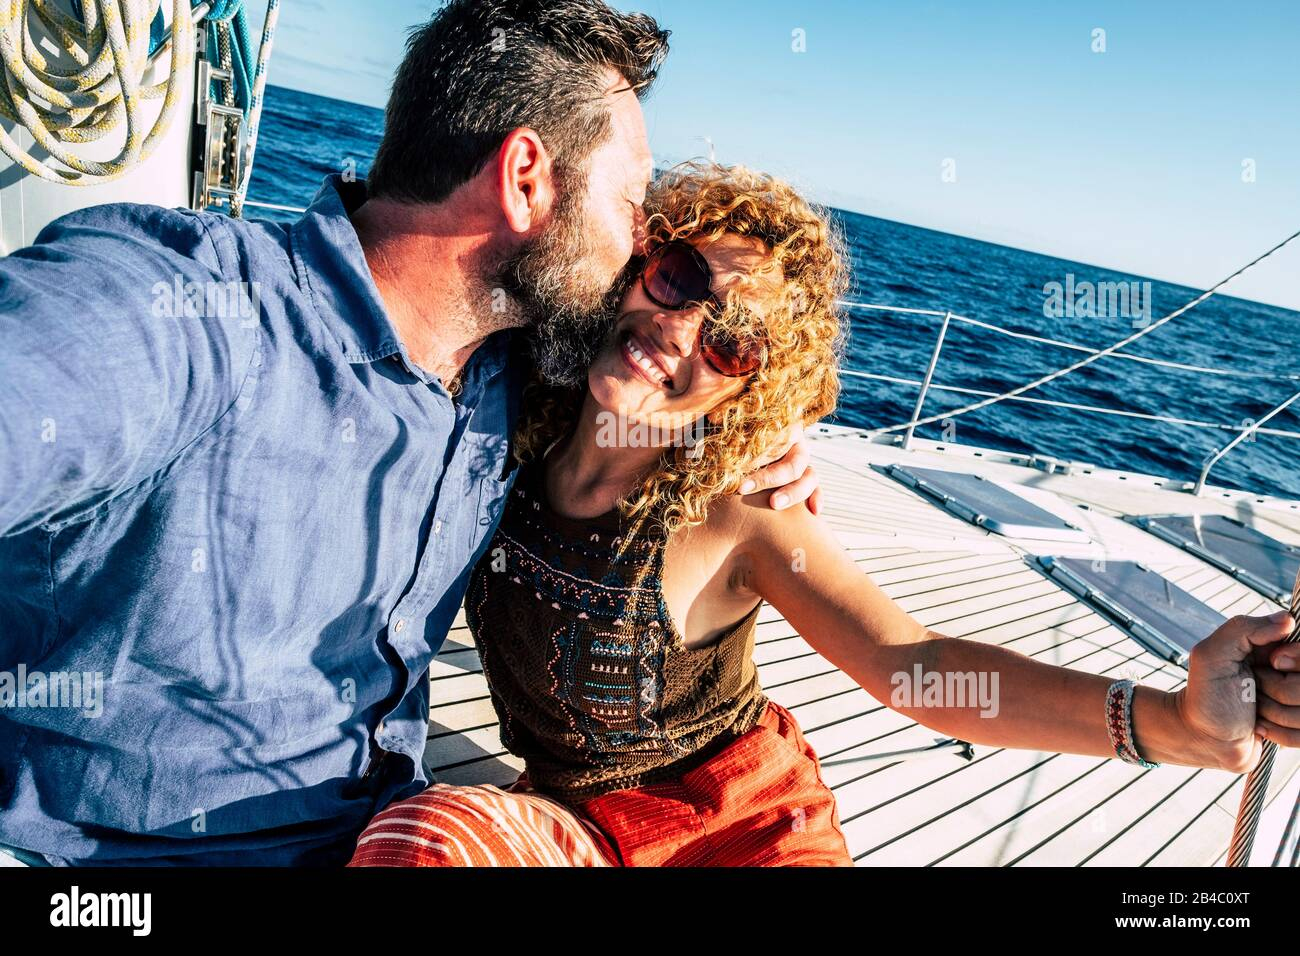 Happy tourist couple of traveler people in love enjoying the sail boat trip together having fun and smiling - cheerful adult man and woman under the summer sun in holiday vacation at the sea Stock Photo